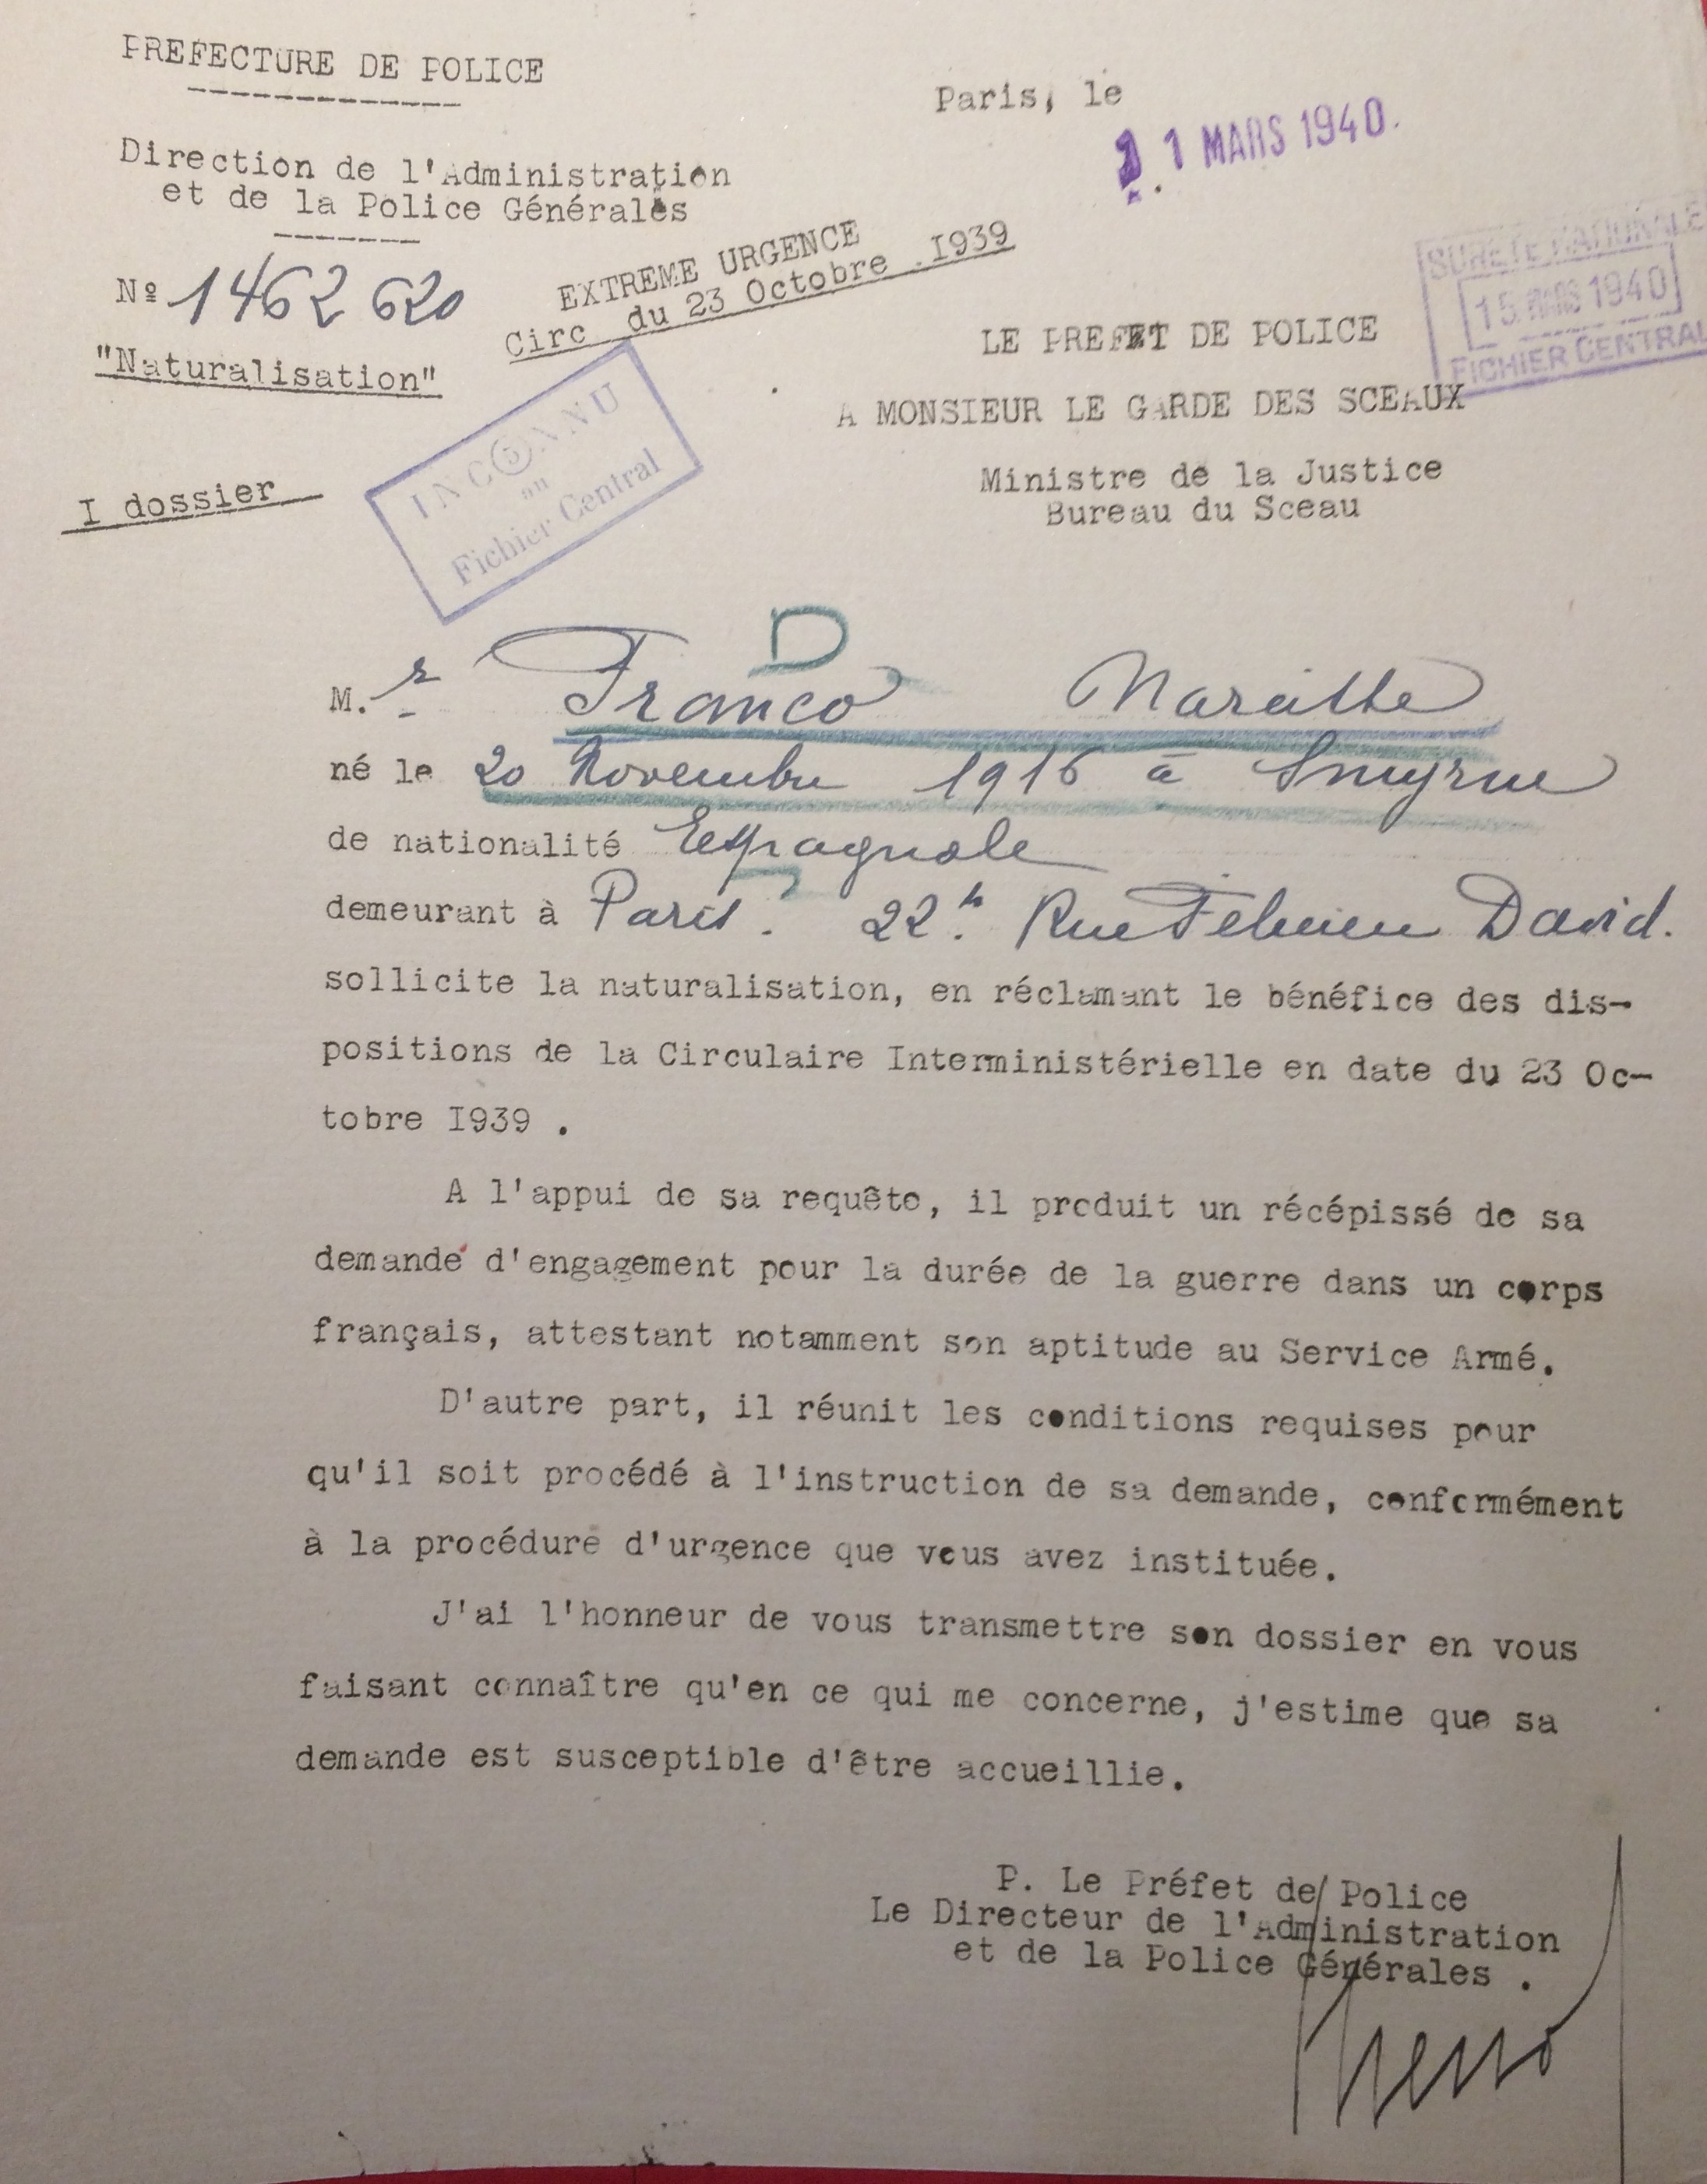 Fonds de la Police de Sûreté [Archives Nationales, 19940445/0229]